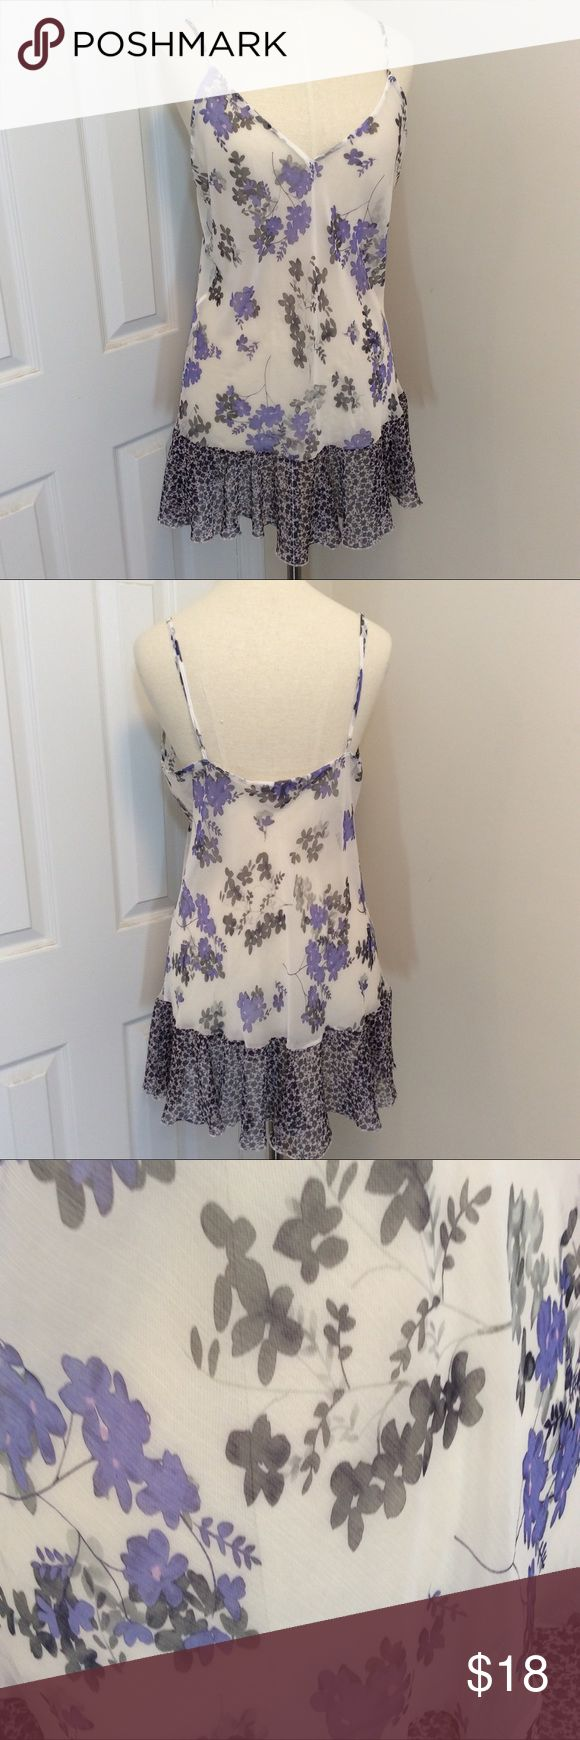 Victoria's Secret purple flowers baby doll size L Victoria's Secret purple flowers baby doll with adjustable straps size large. Sexy baby doll to wear on a honeymoon, anniversary or just that special night. Measurements taken from the back with garment laying flat bust is 34 inches and the length is 22 inches measured from under the arm. GUC questions??? Please ask Victoria's Secret Intimates & Sleepwear Pajamas